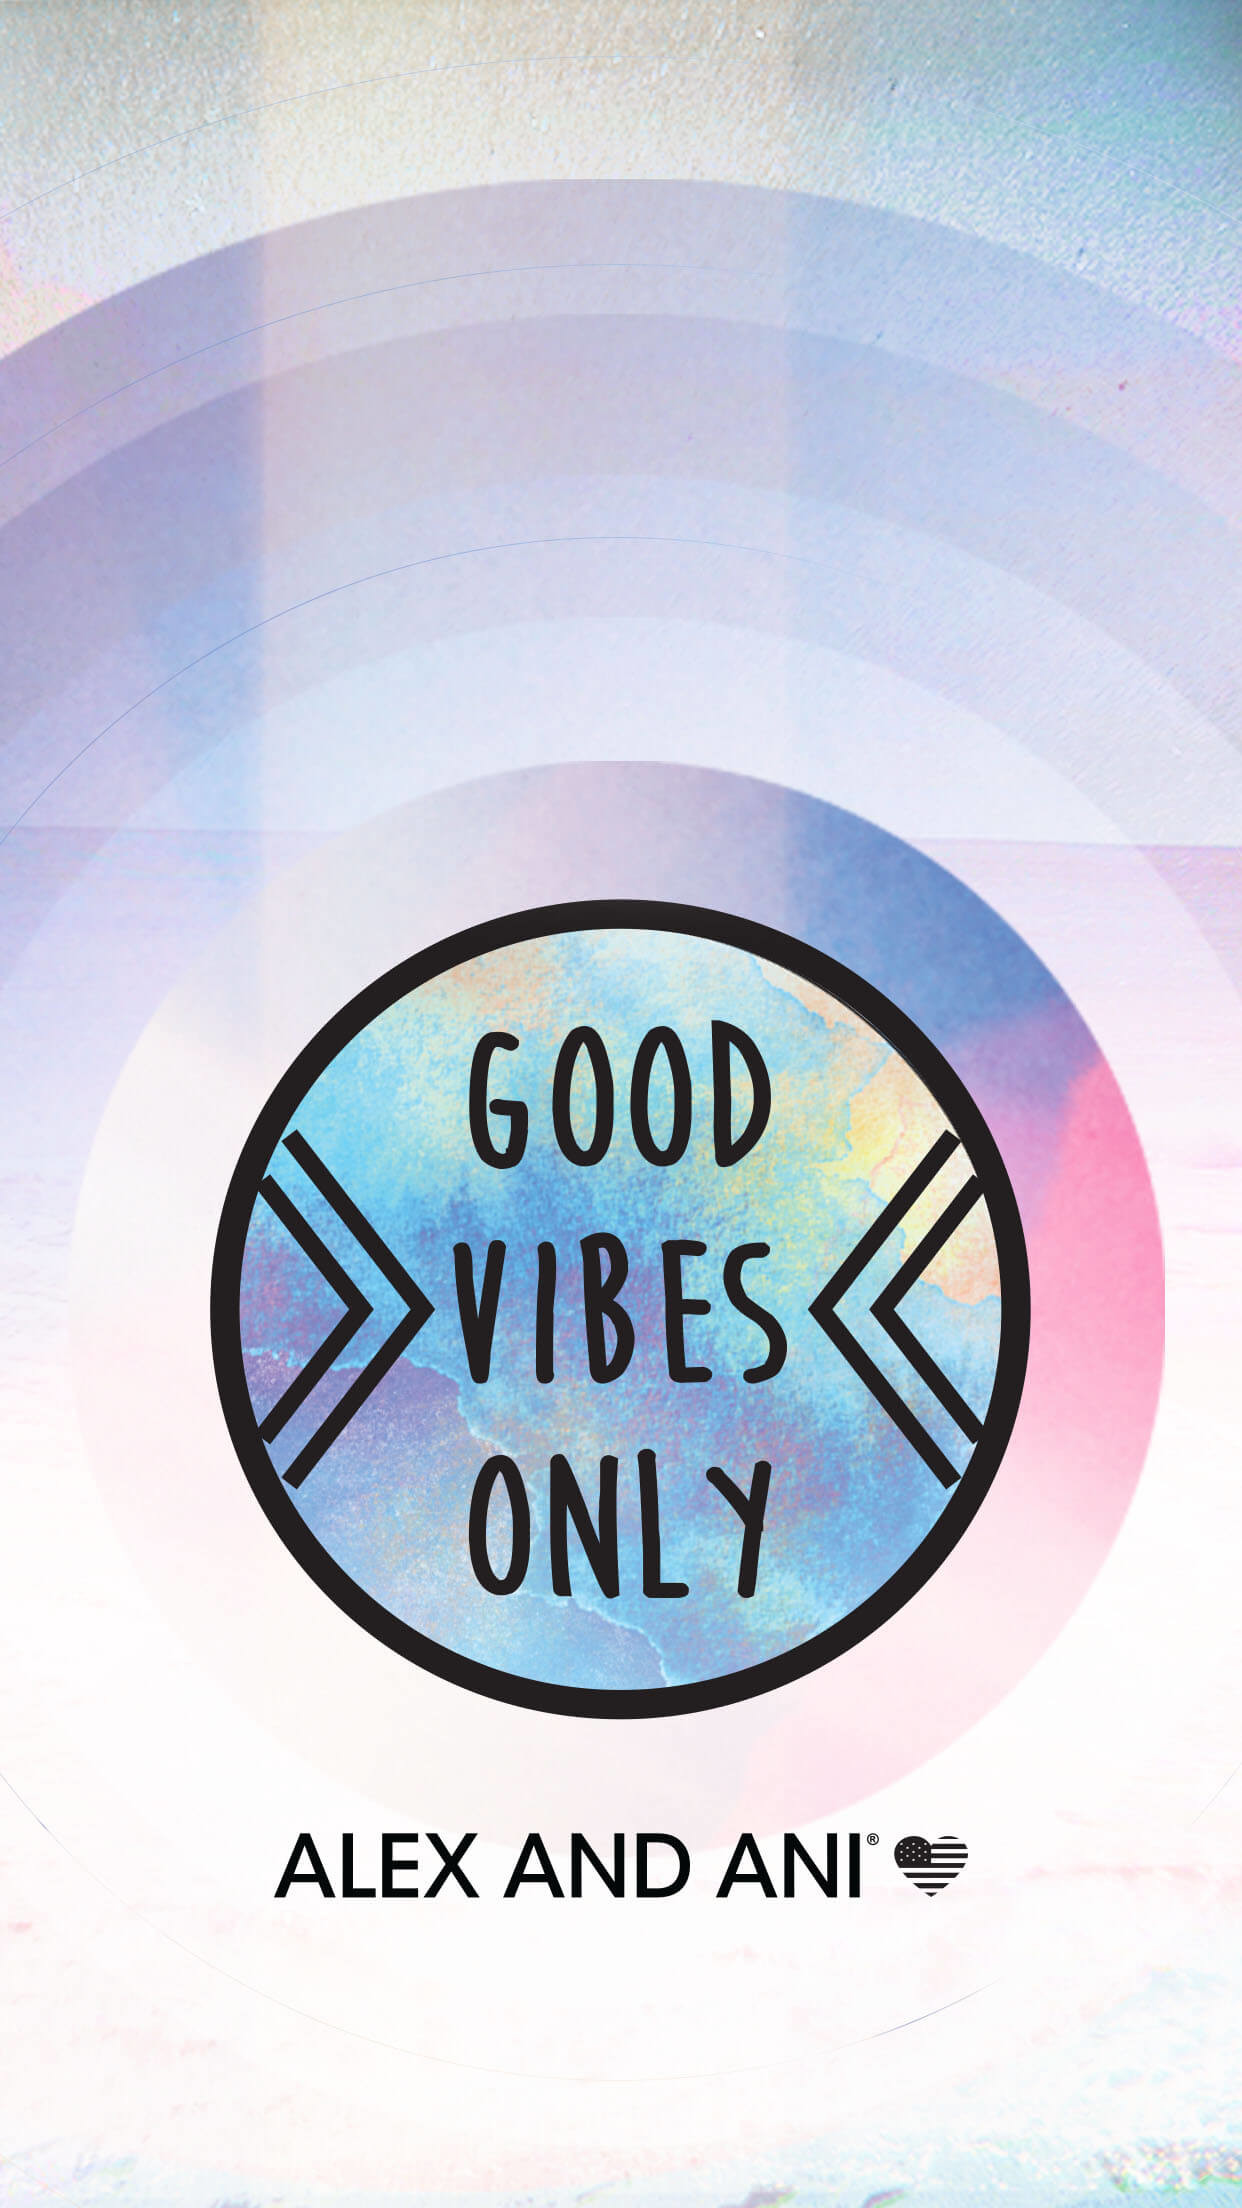 Alex And Ani Good Vibes Only Mobile Wallpaper Src Pastle Background Good Vibes Only 1242x2208 Download Hd Wallpaper Wallpapertip